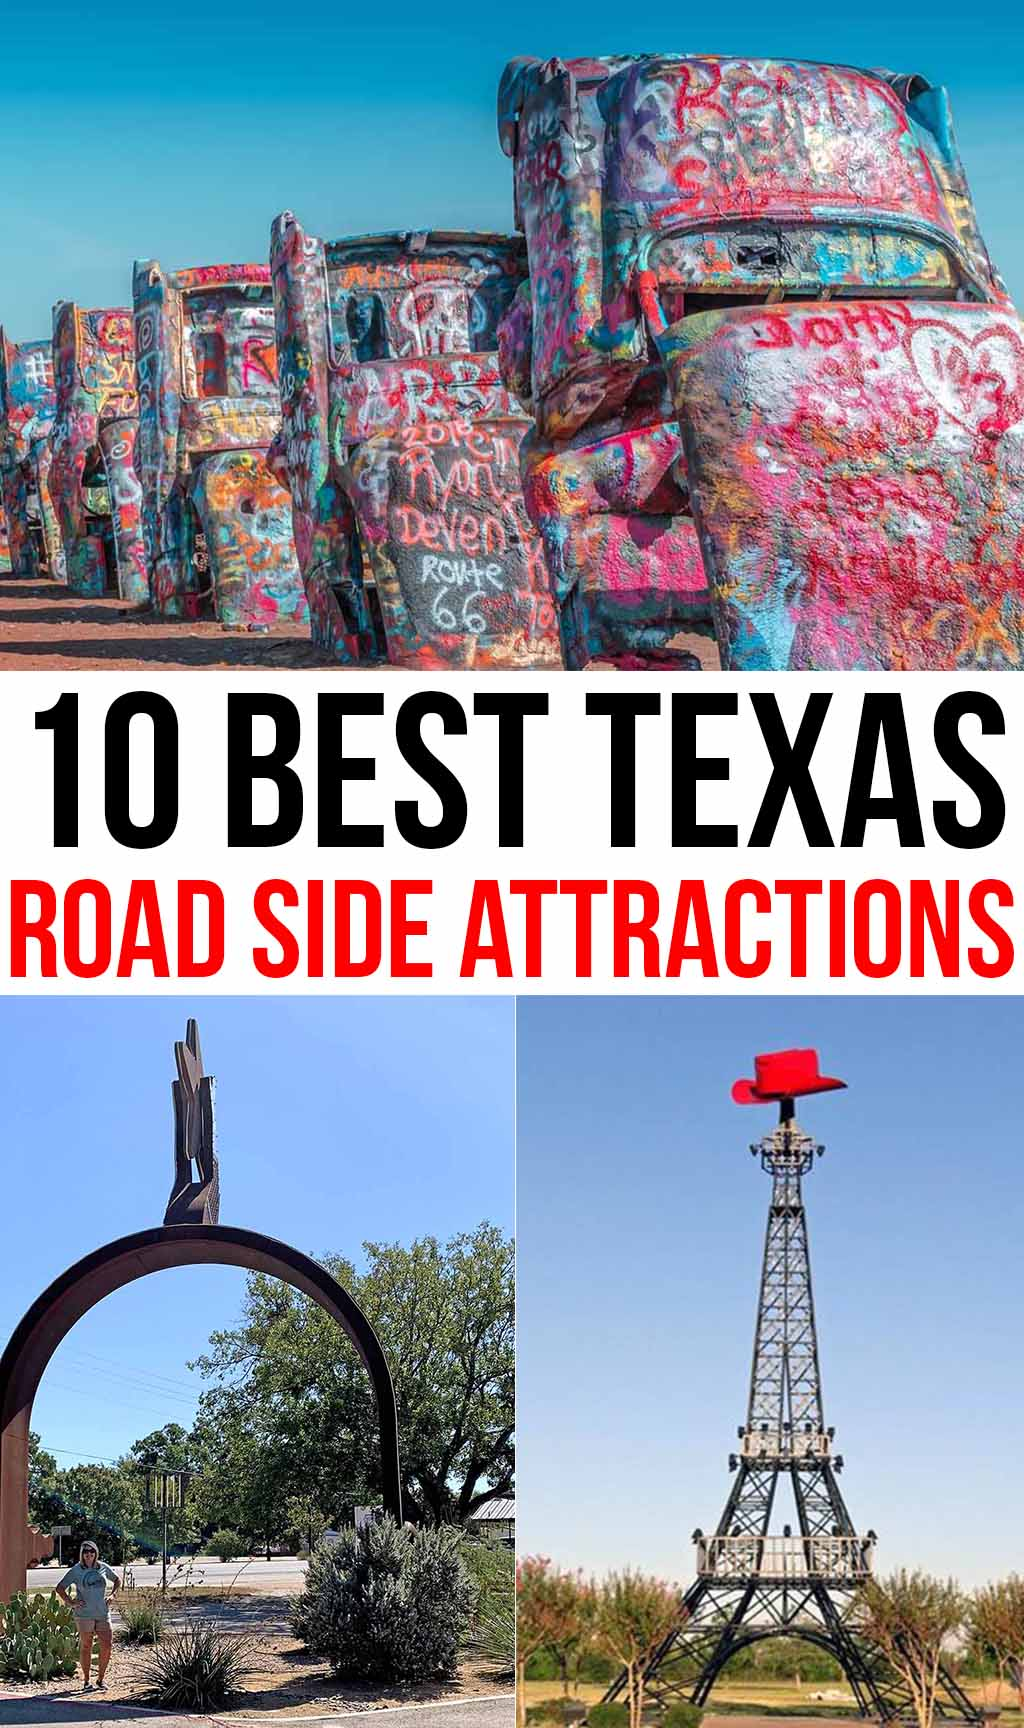 10 Best Texas Road Side Attractions